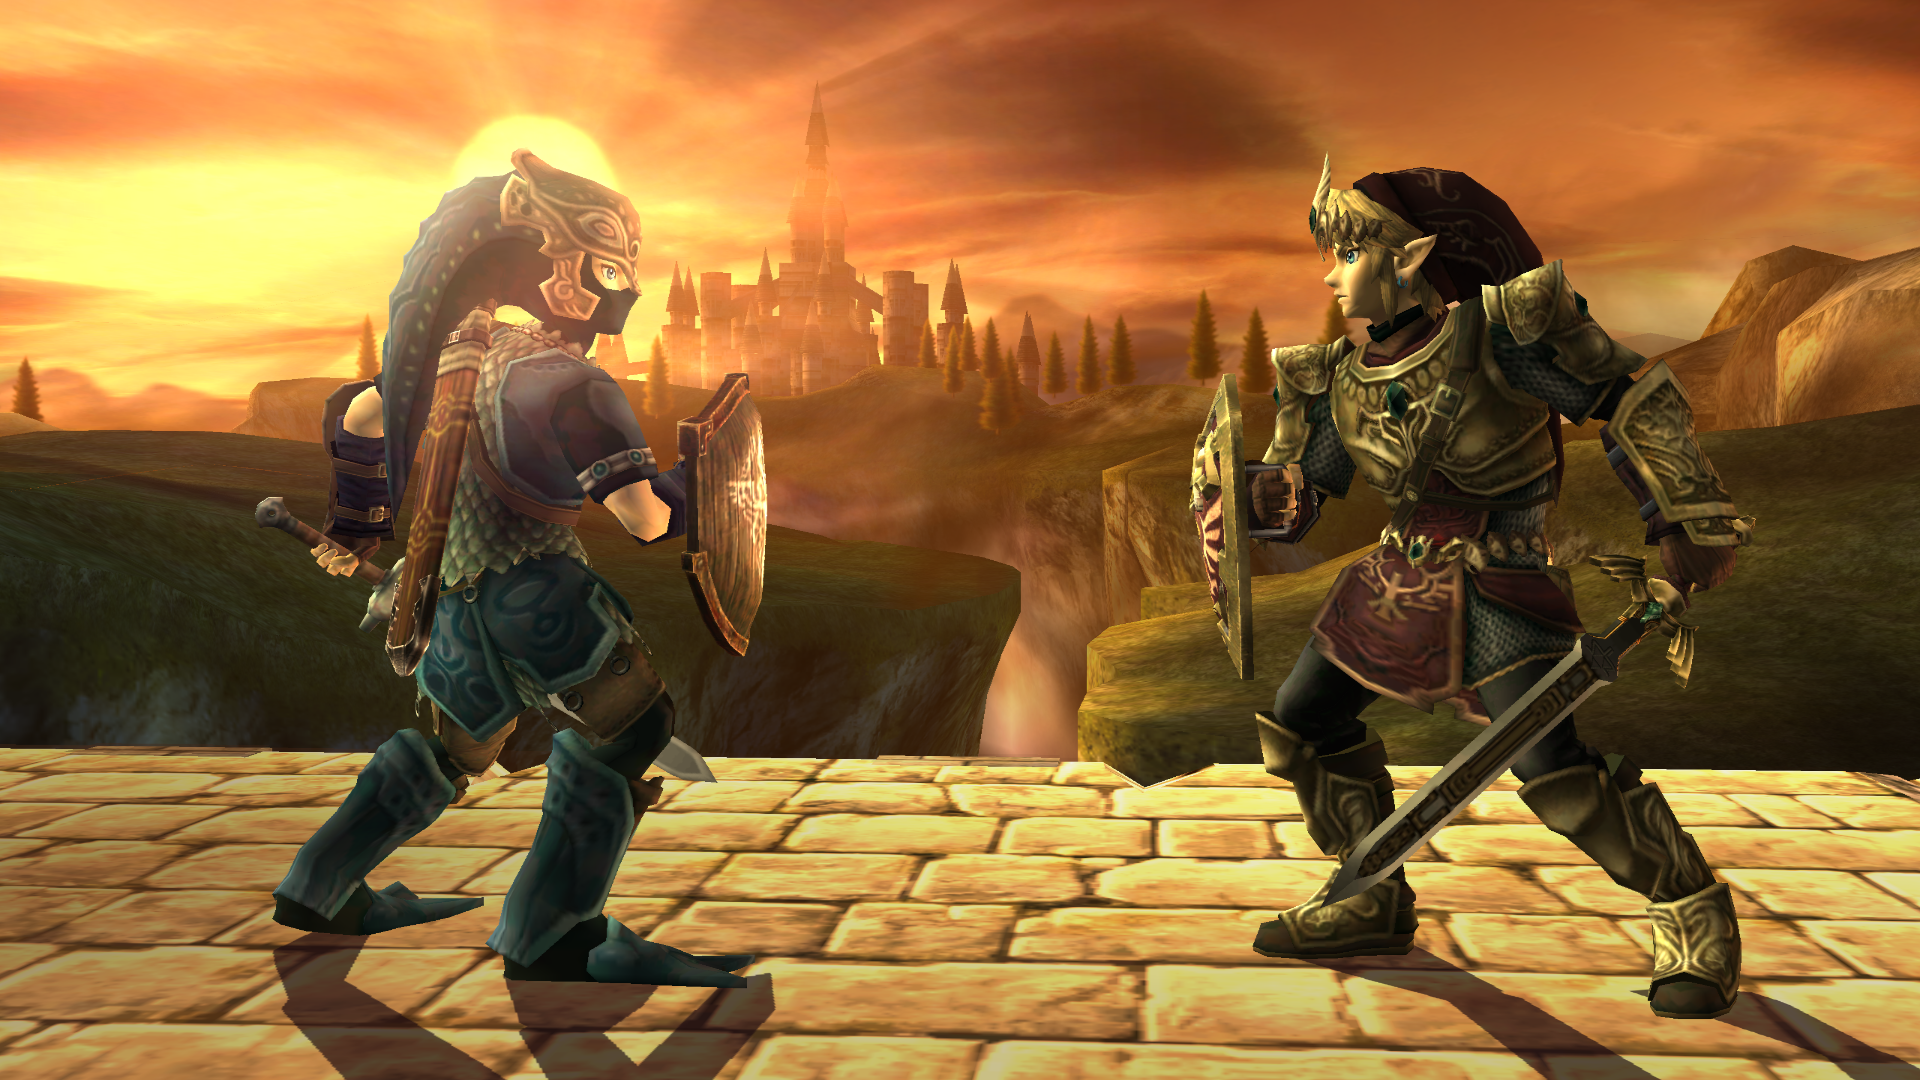 The Legend Of Zelda Twilight Princess Wallpapers HD 1920x1080